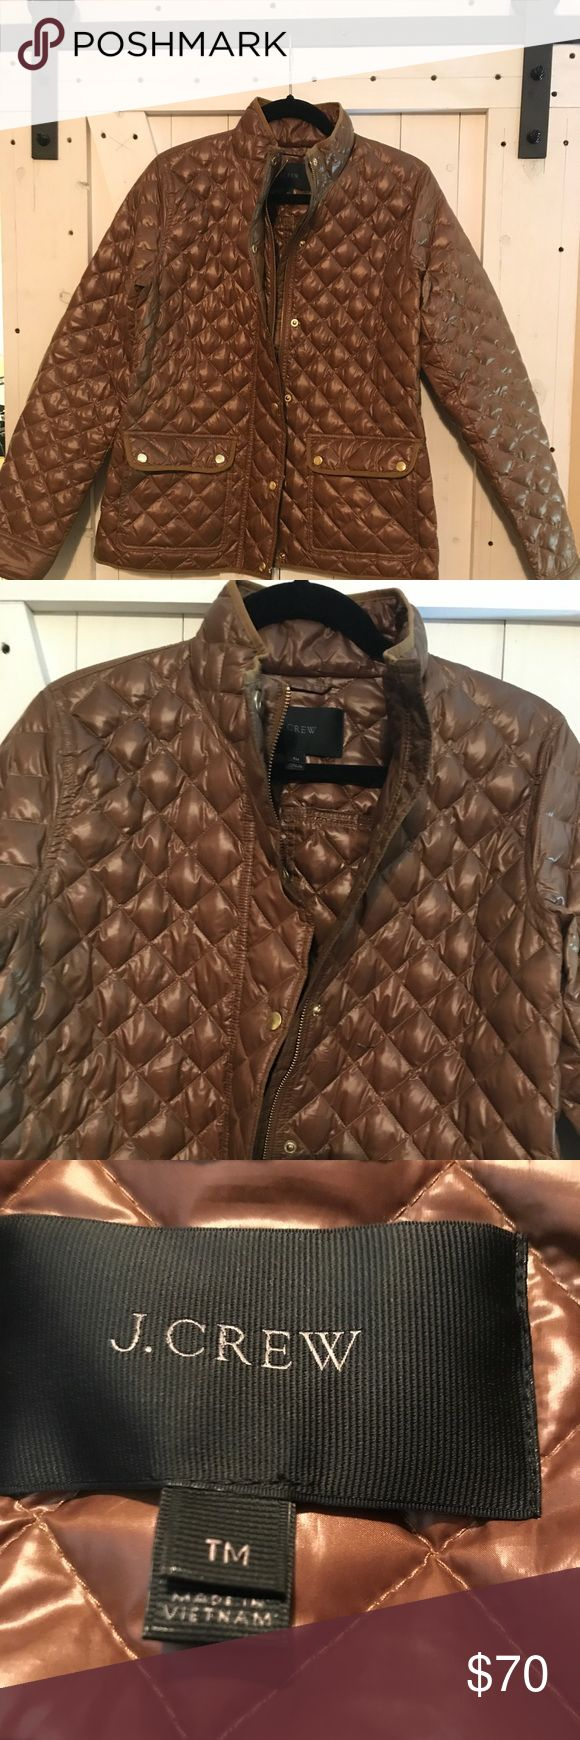 "J.CREW Quilted Jacket Barely worn J.CREW jacket! I bought this online and was worried the arms would be too short, so I bought a Medium Tall which ended up being too big. I am 5'8"" for reference, so this is perfect for the taller ladies out there! I have worn this a few times but it really is like new. J. Crew Jackets & Coats Puffers"